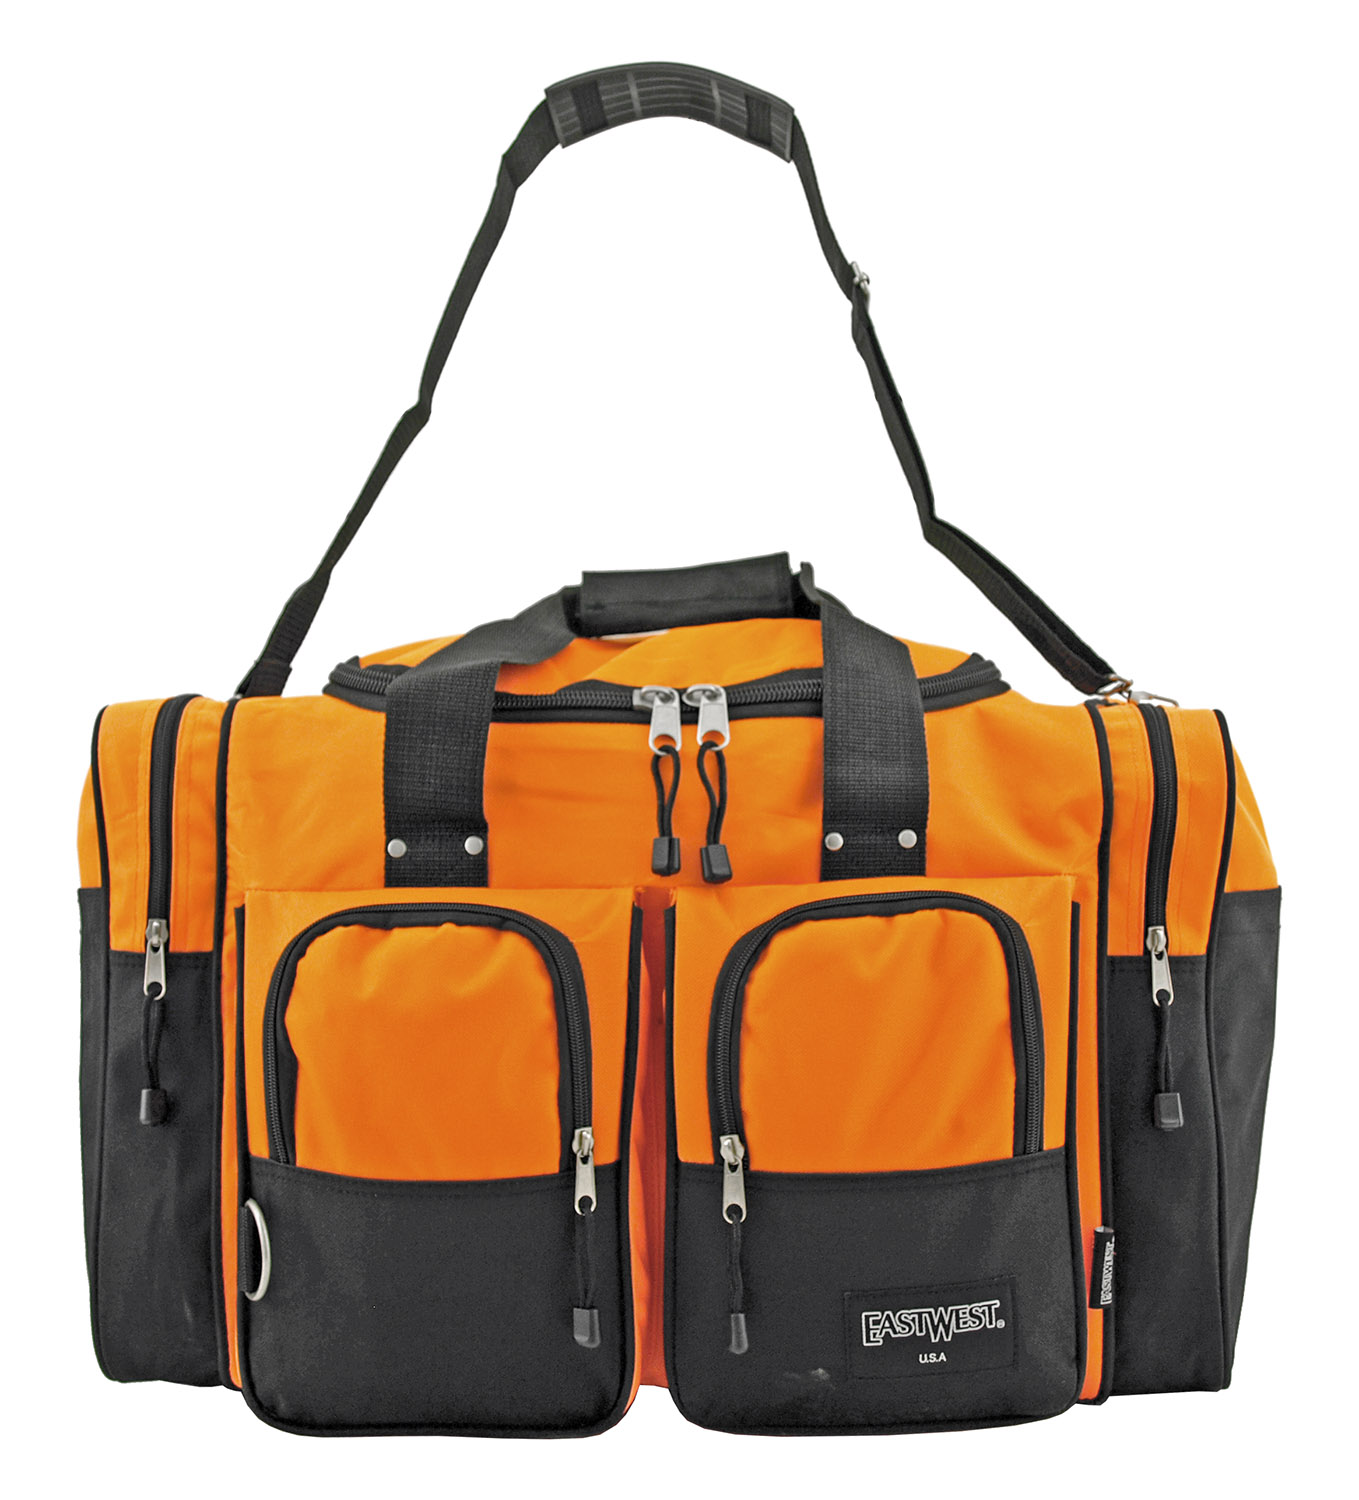 The Standard Duffel Bag with Bold Colors - Orange